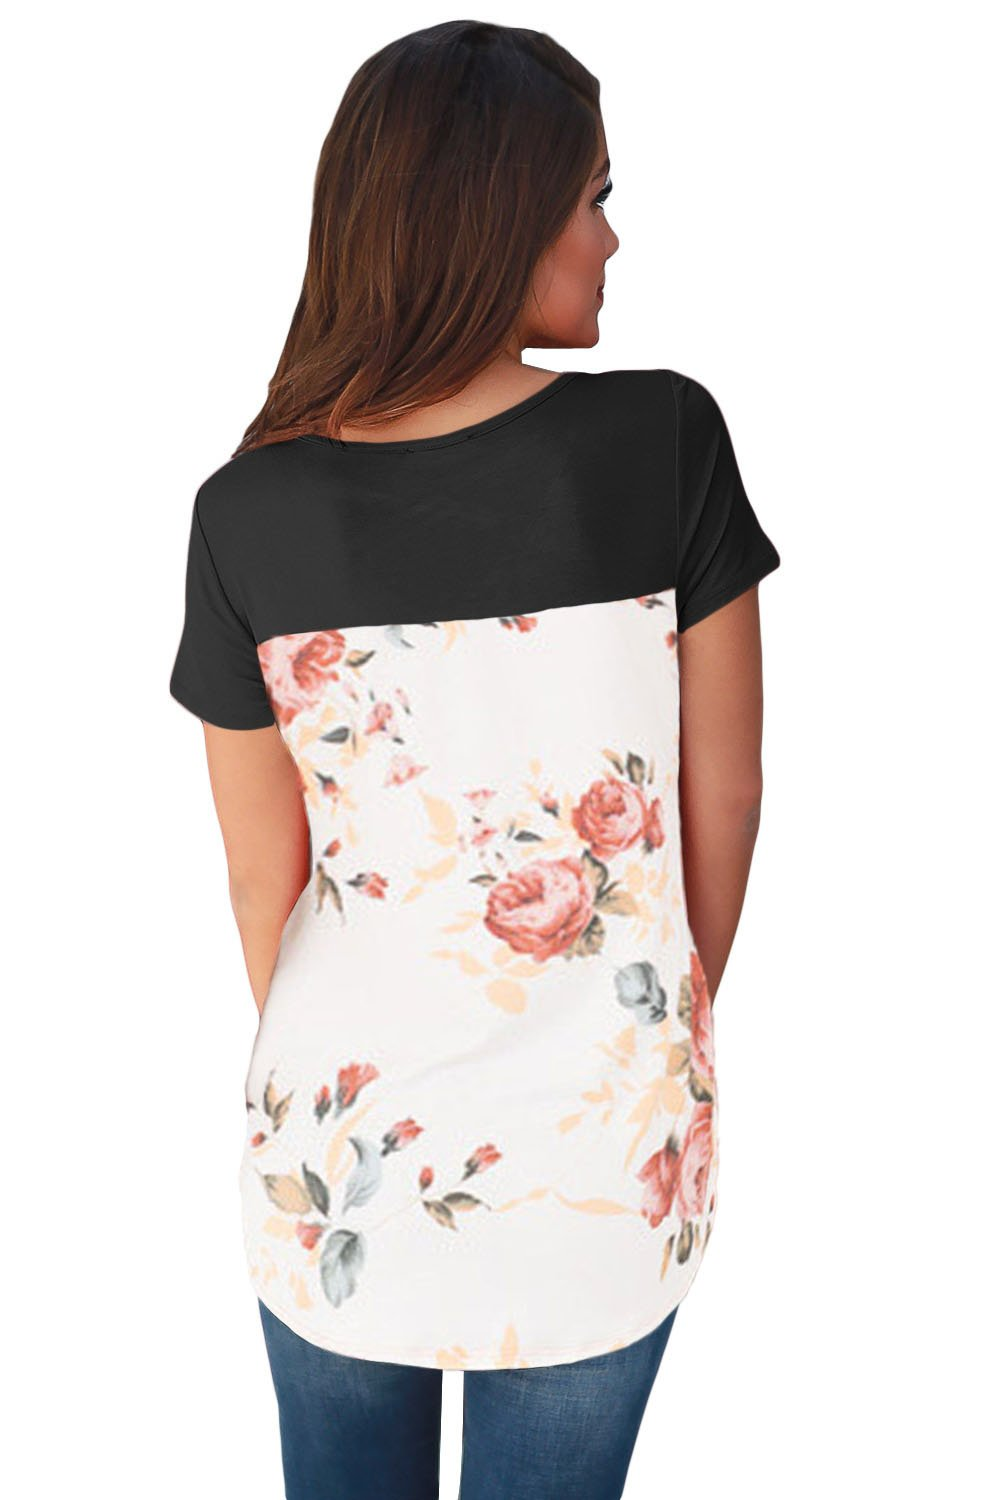 Chic Black Floral Print Lower Back T-shirt Online